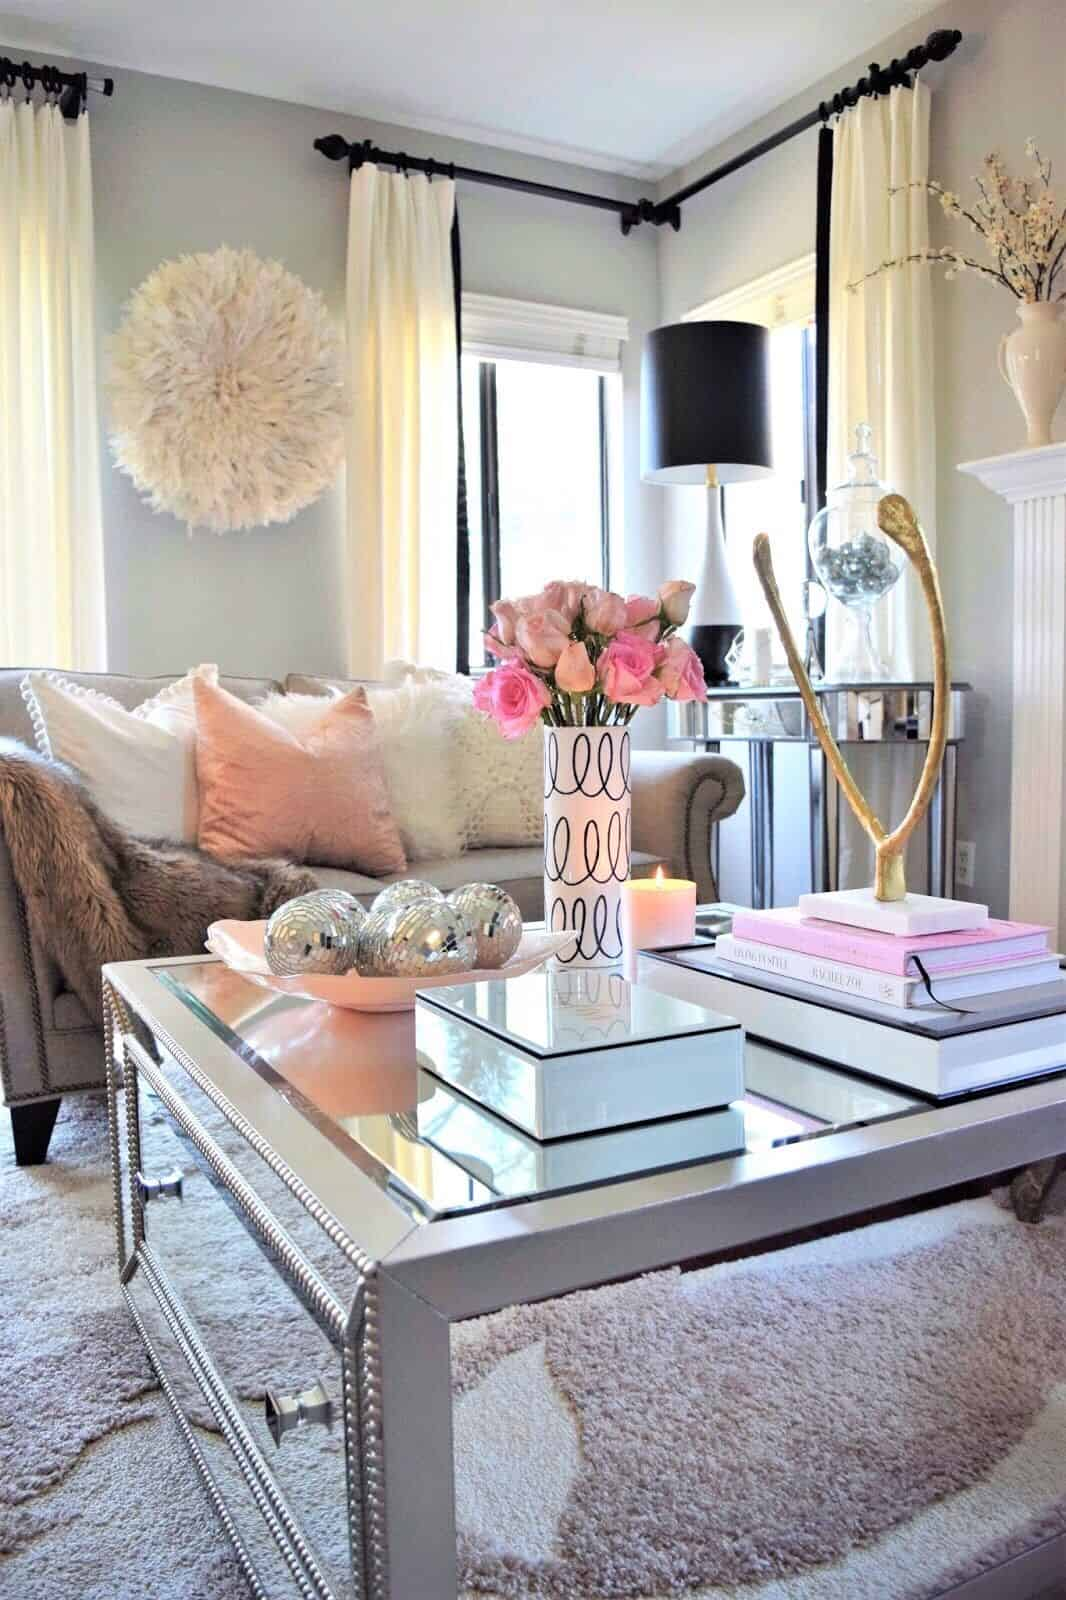 The Highlight Of Fresh Feminine To Present The Most Appealing Living Room